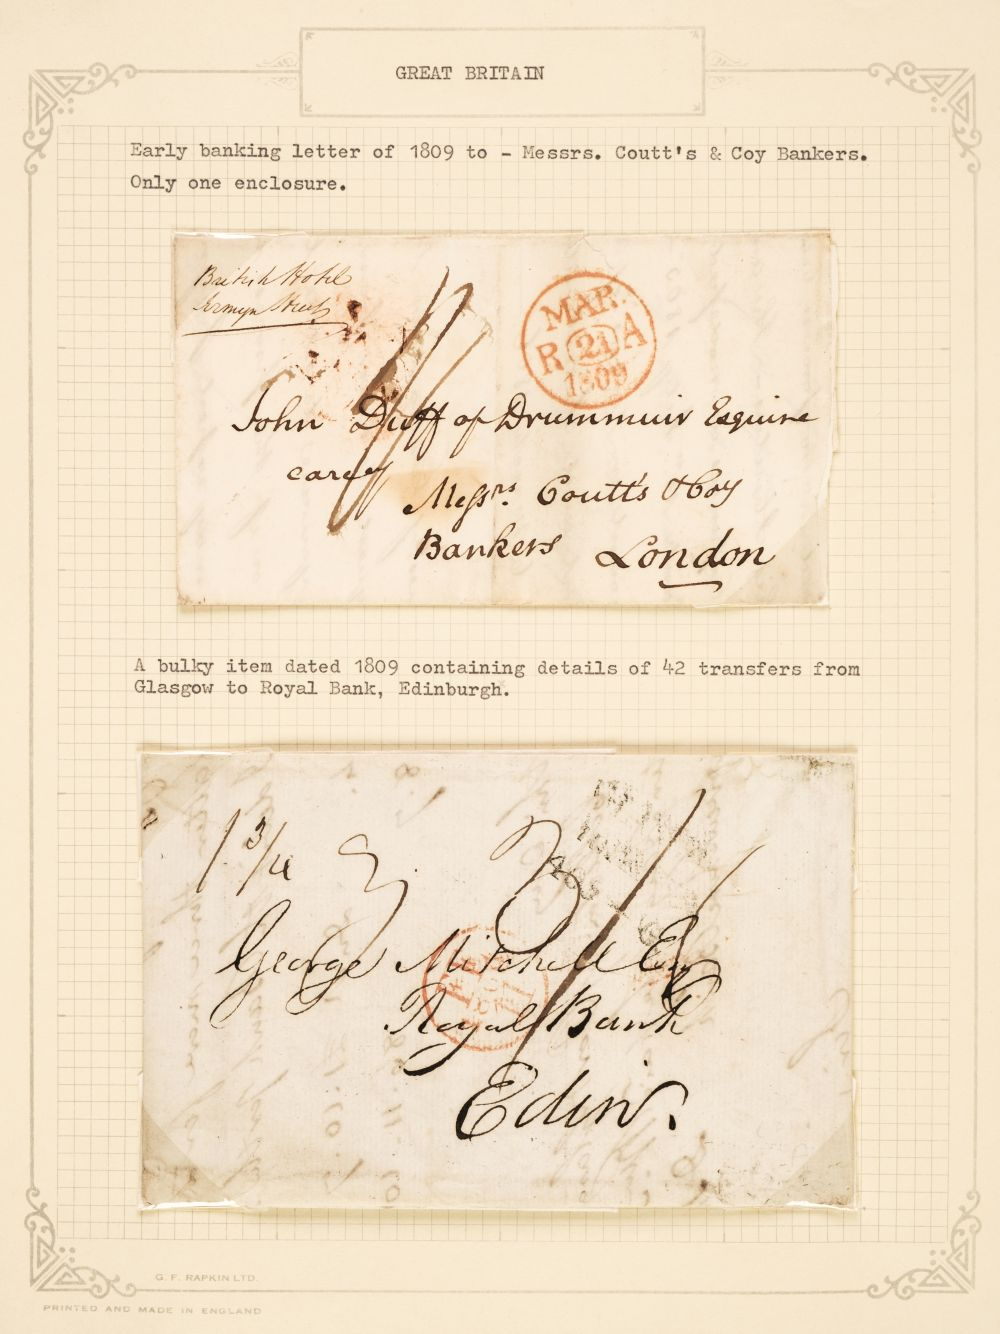 * Postal History. Great Britain circa 1800 - 1890